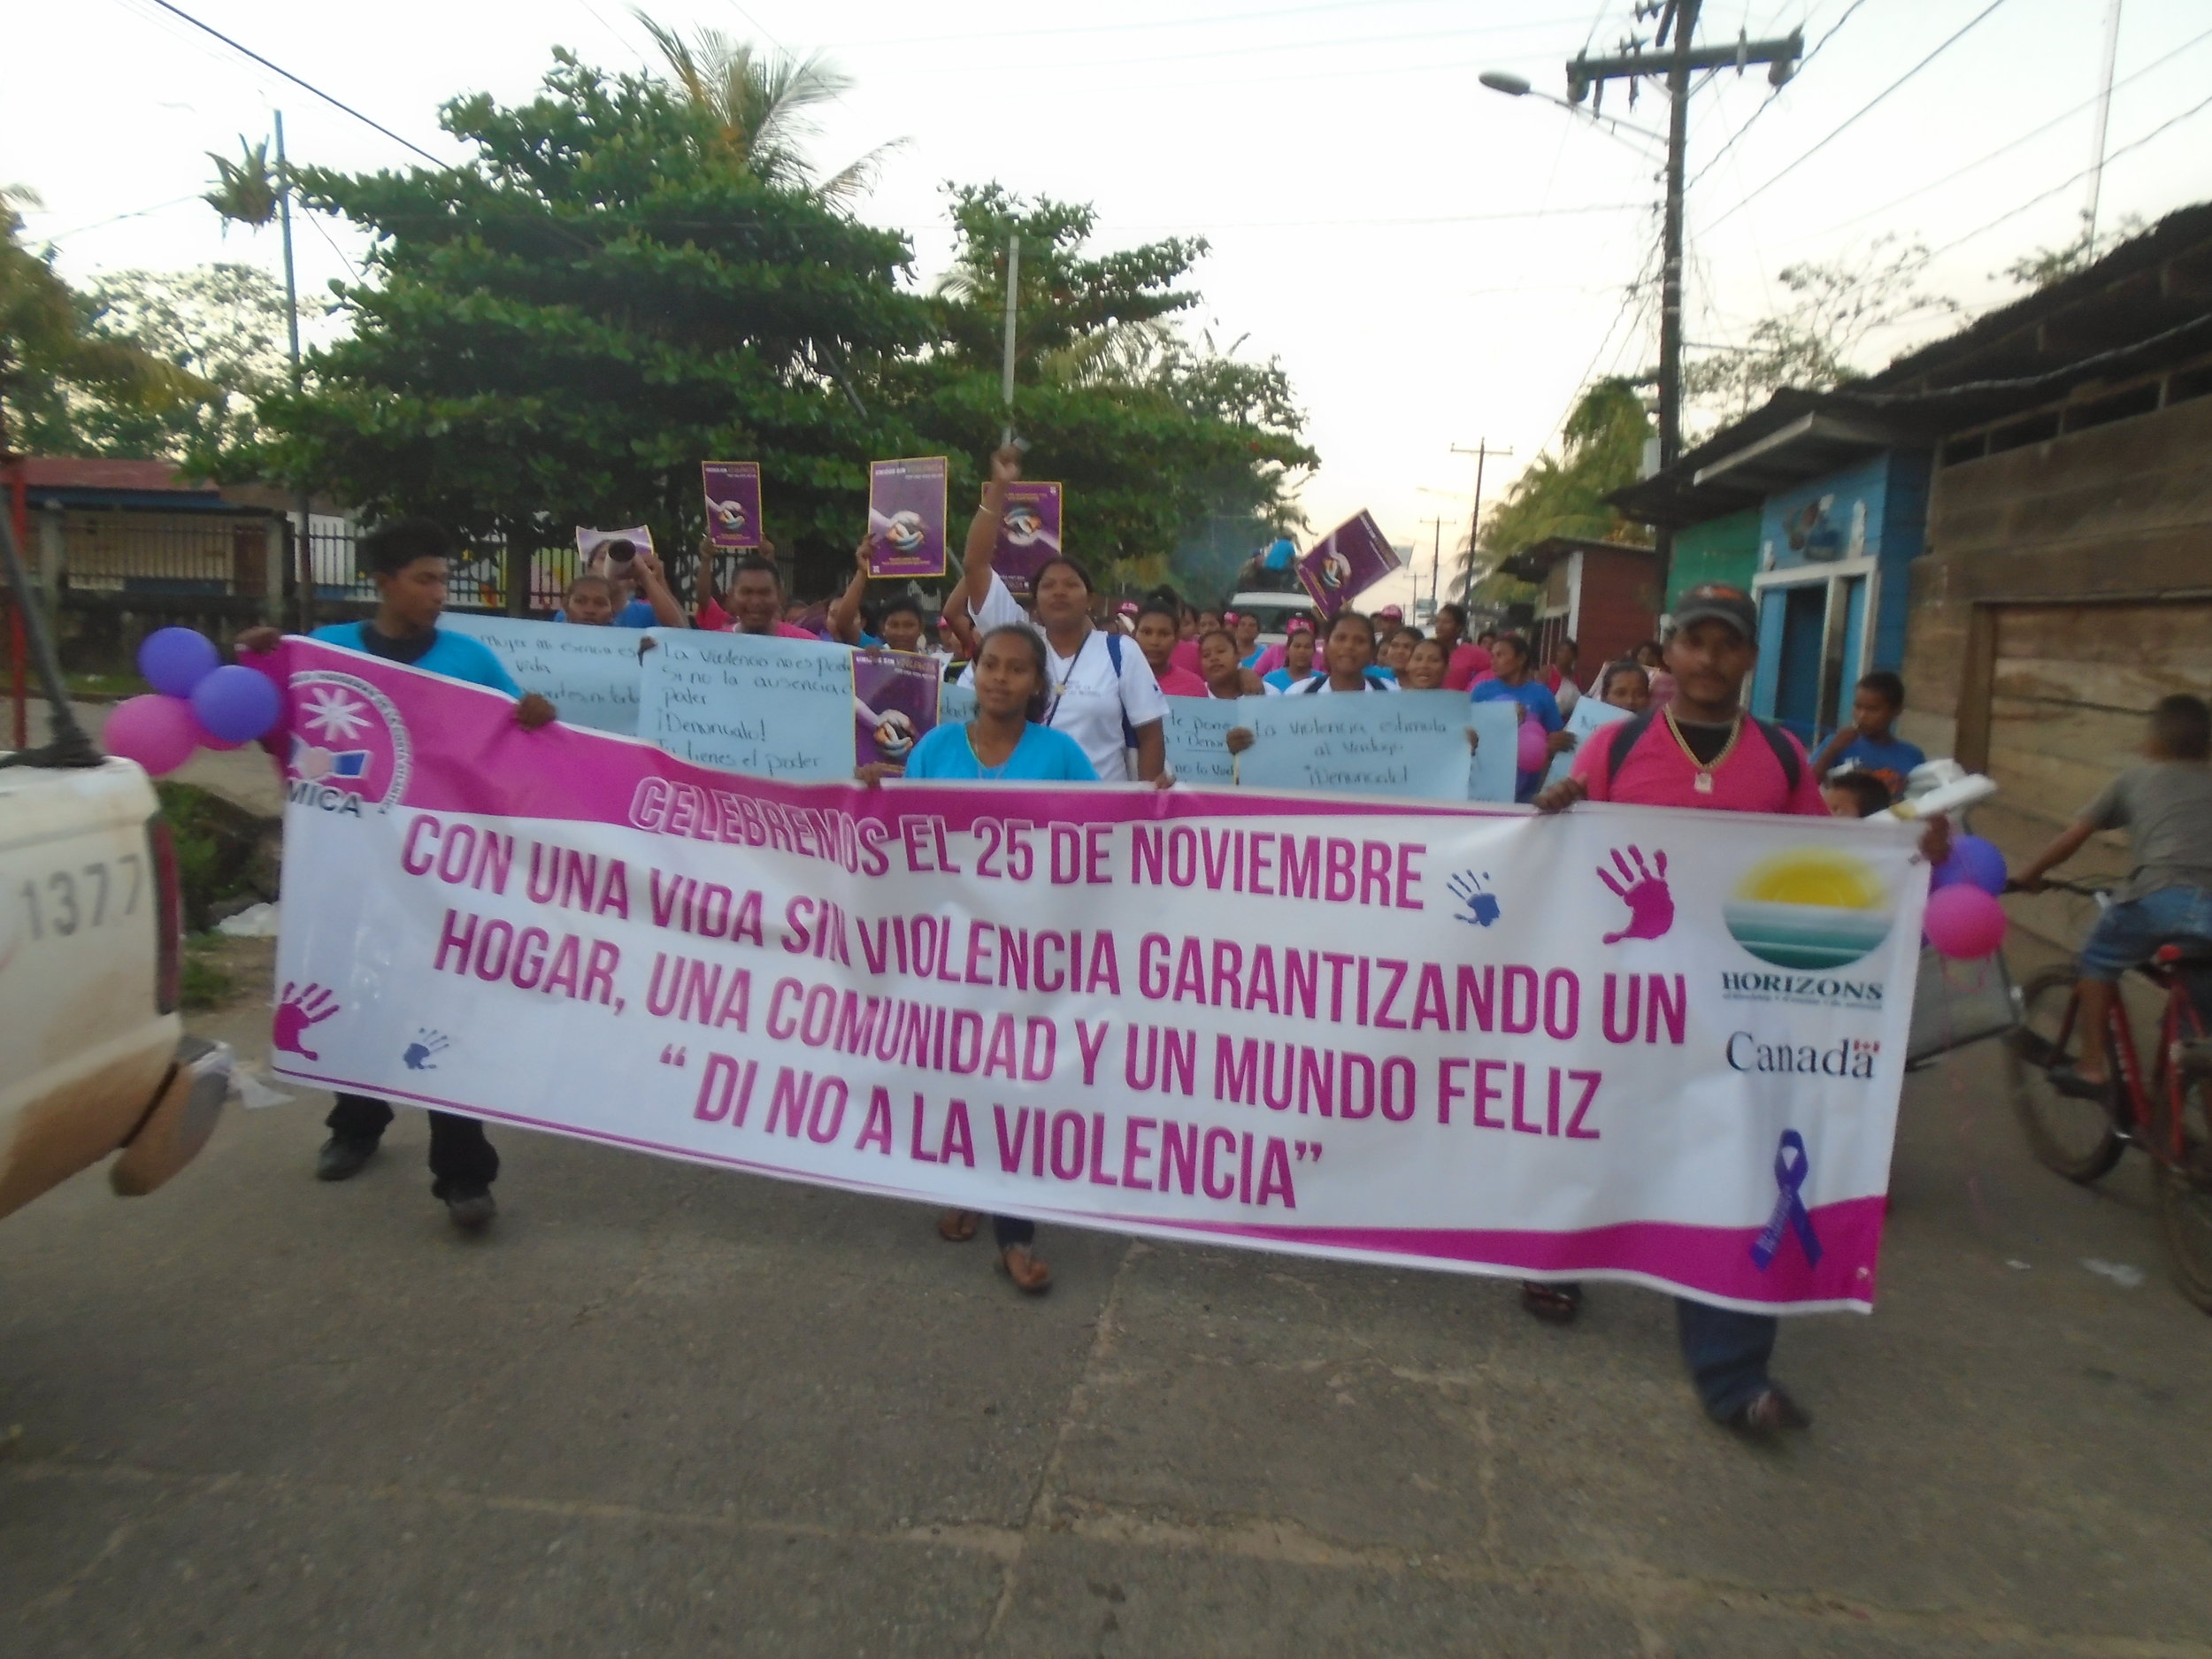 """Members from Horizons' partner organization AMICA participate in an anti-violence march holding a banner that says: """"Life without violence guarantees a happy home, community and world - Say no to violence""""."""